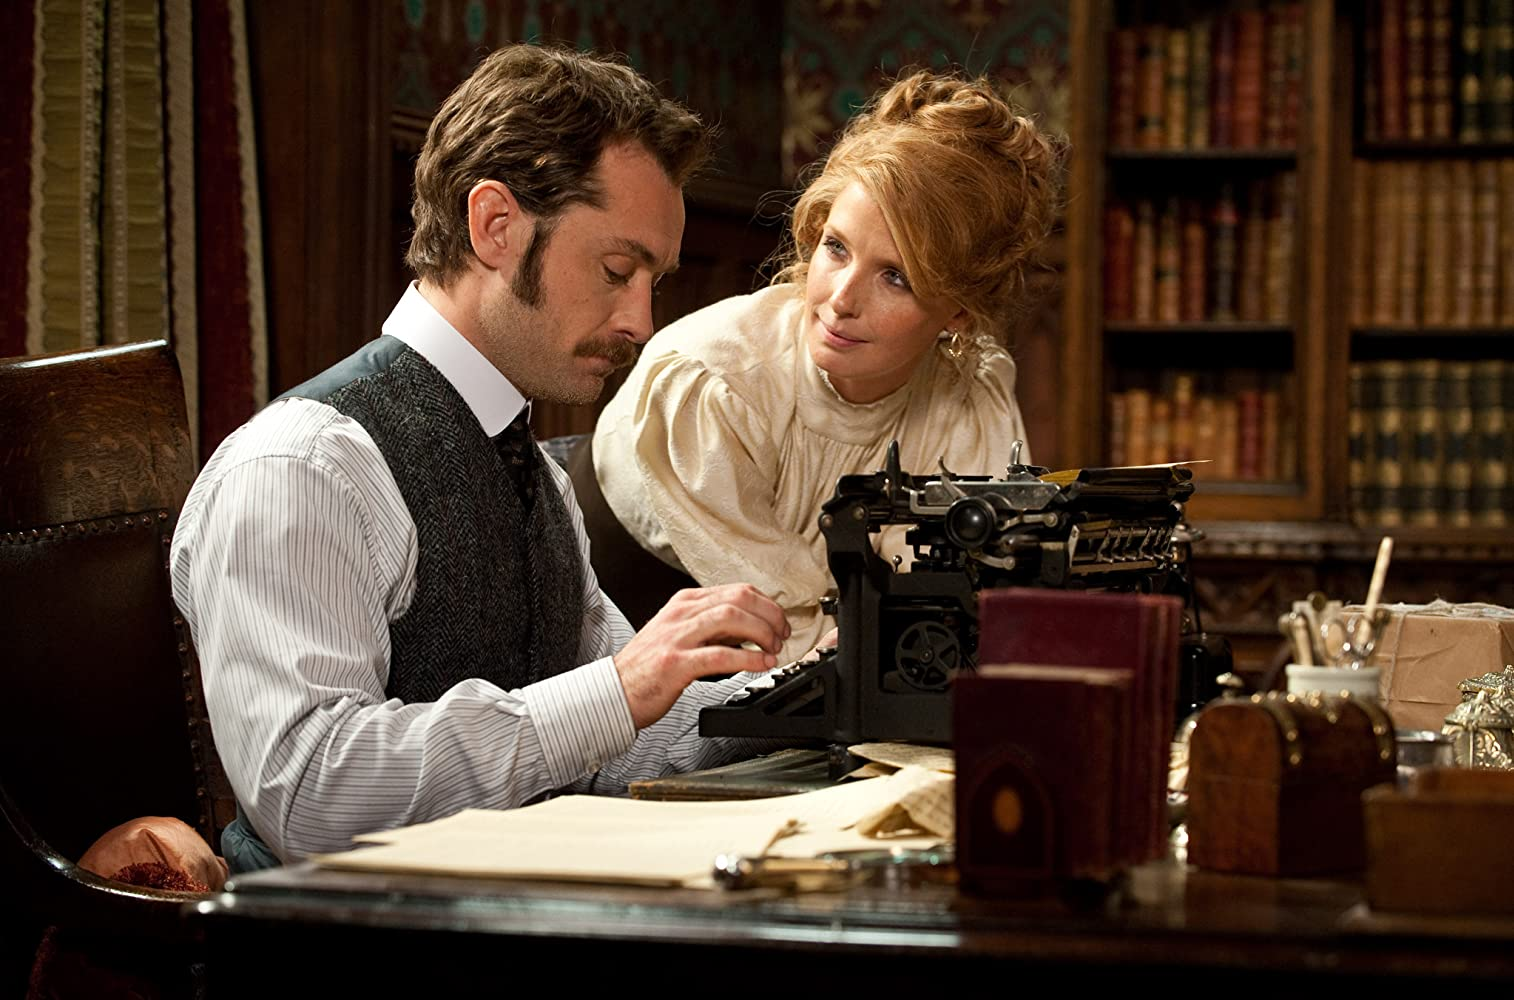 Jude Law and Kelly Reilly in Sherlock Holmes: A Game of Shadows (2011)